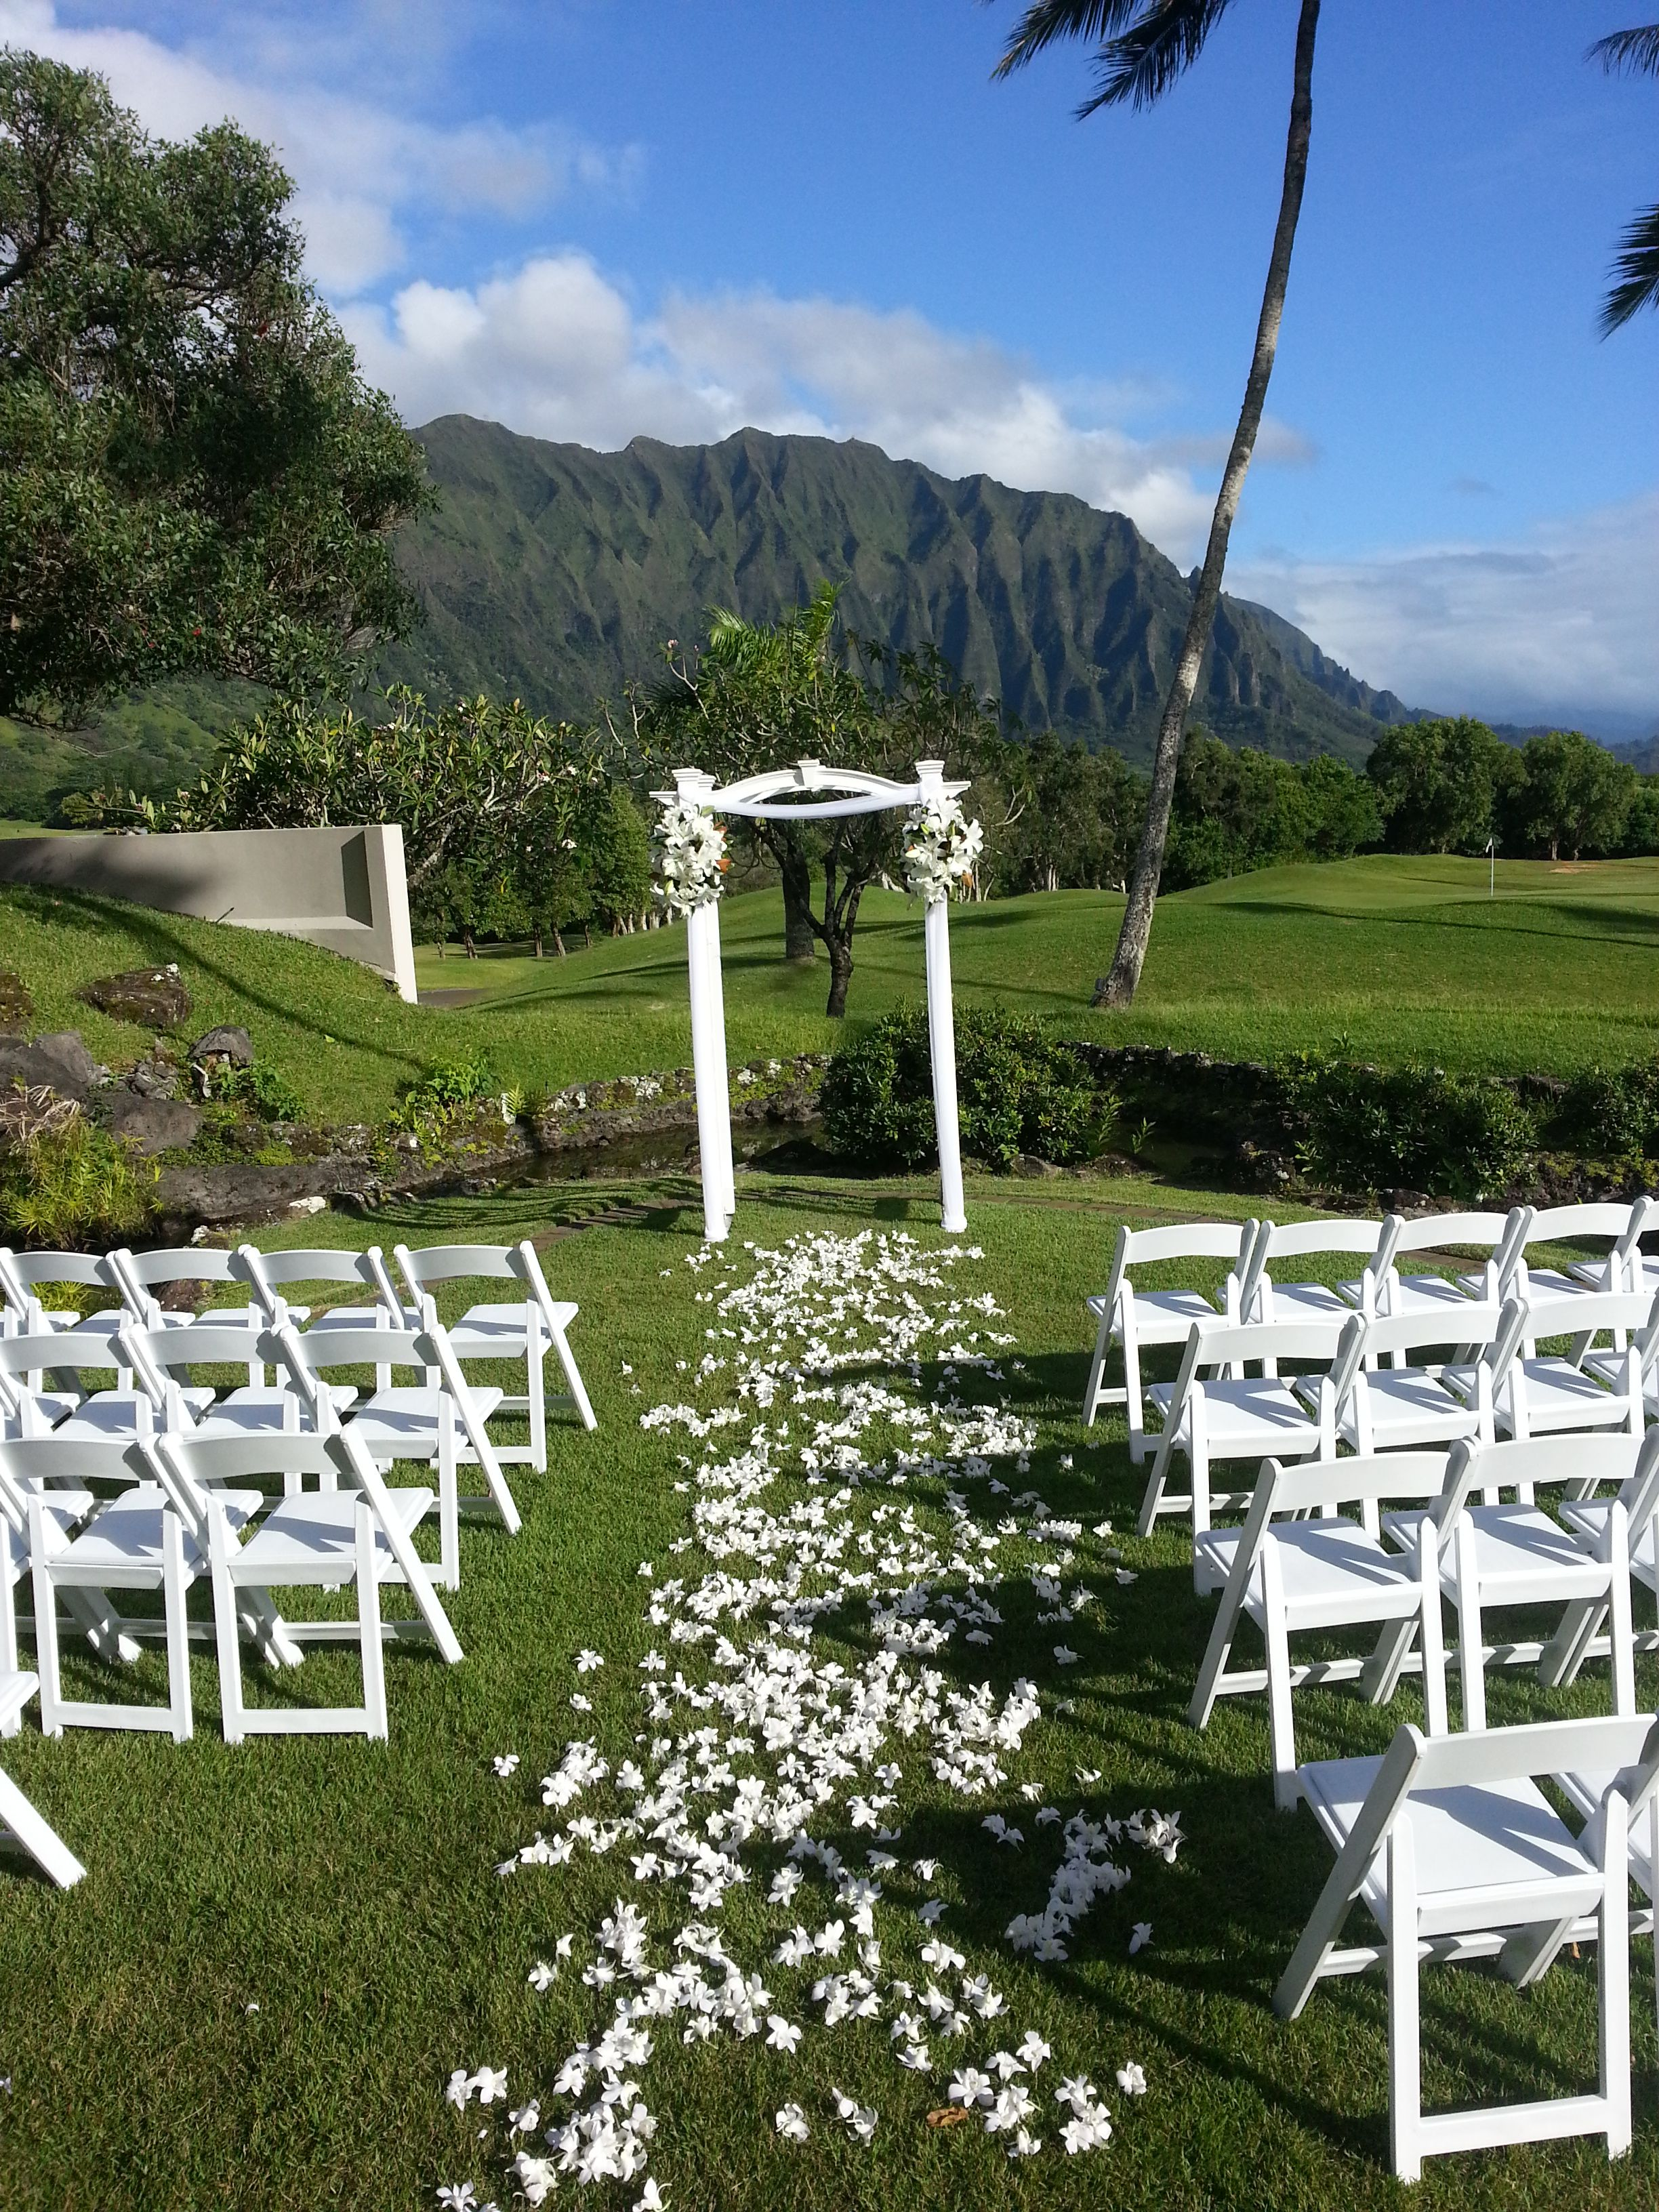 Koolau Golf Course Love The Mountains In Background Courses Issa Wedding